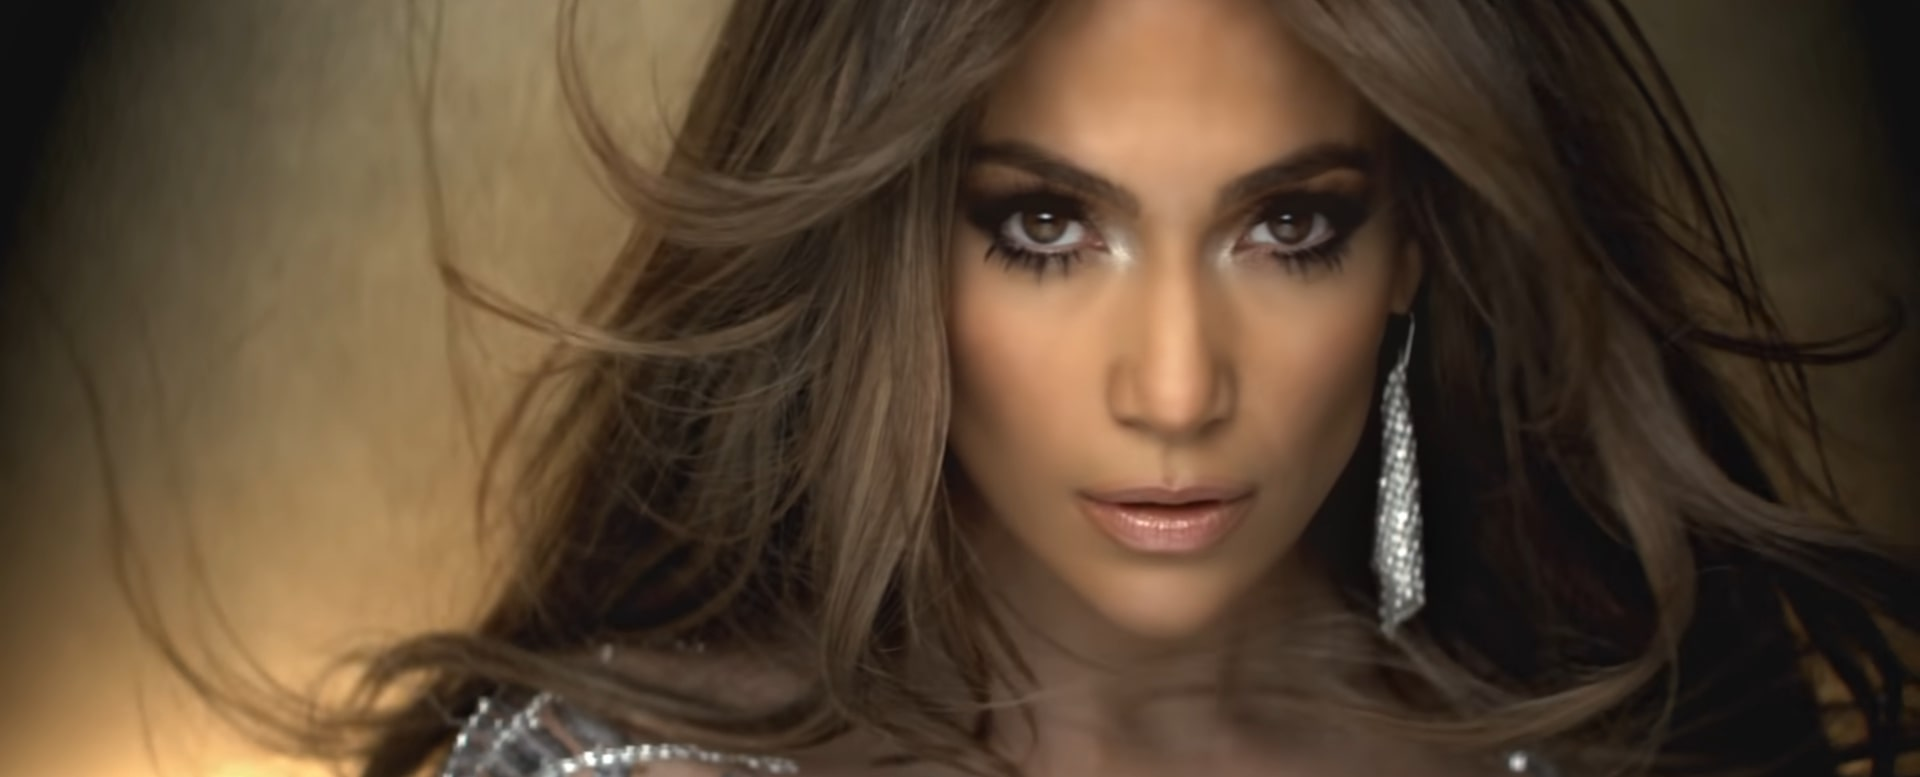 download get on the floor jennifer lopez